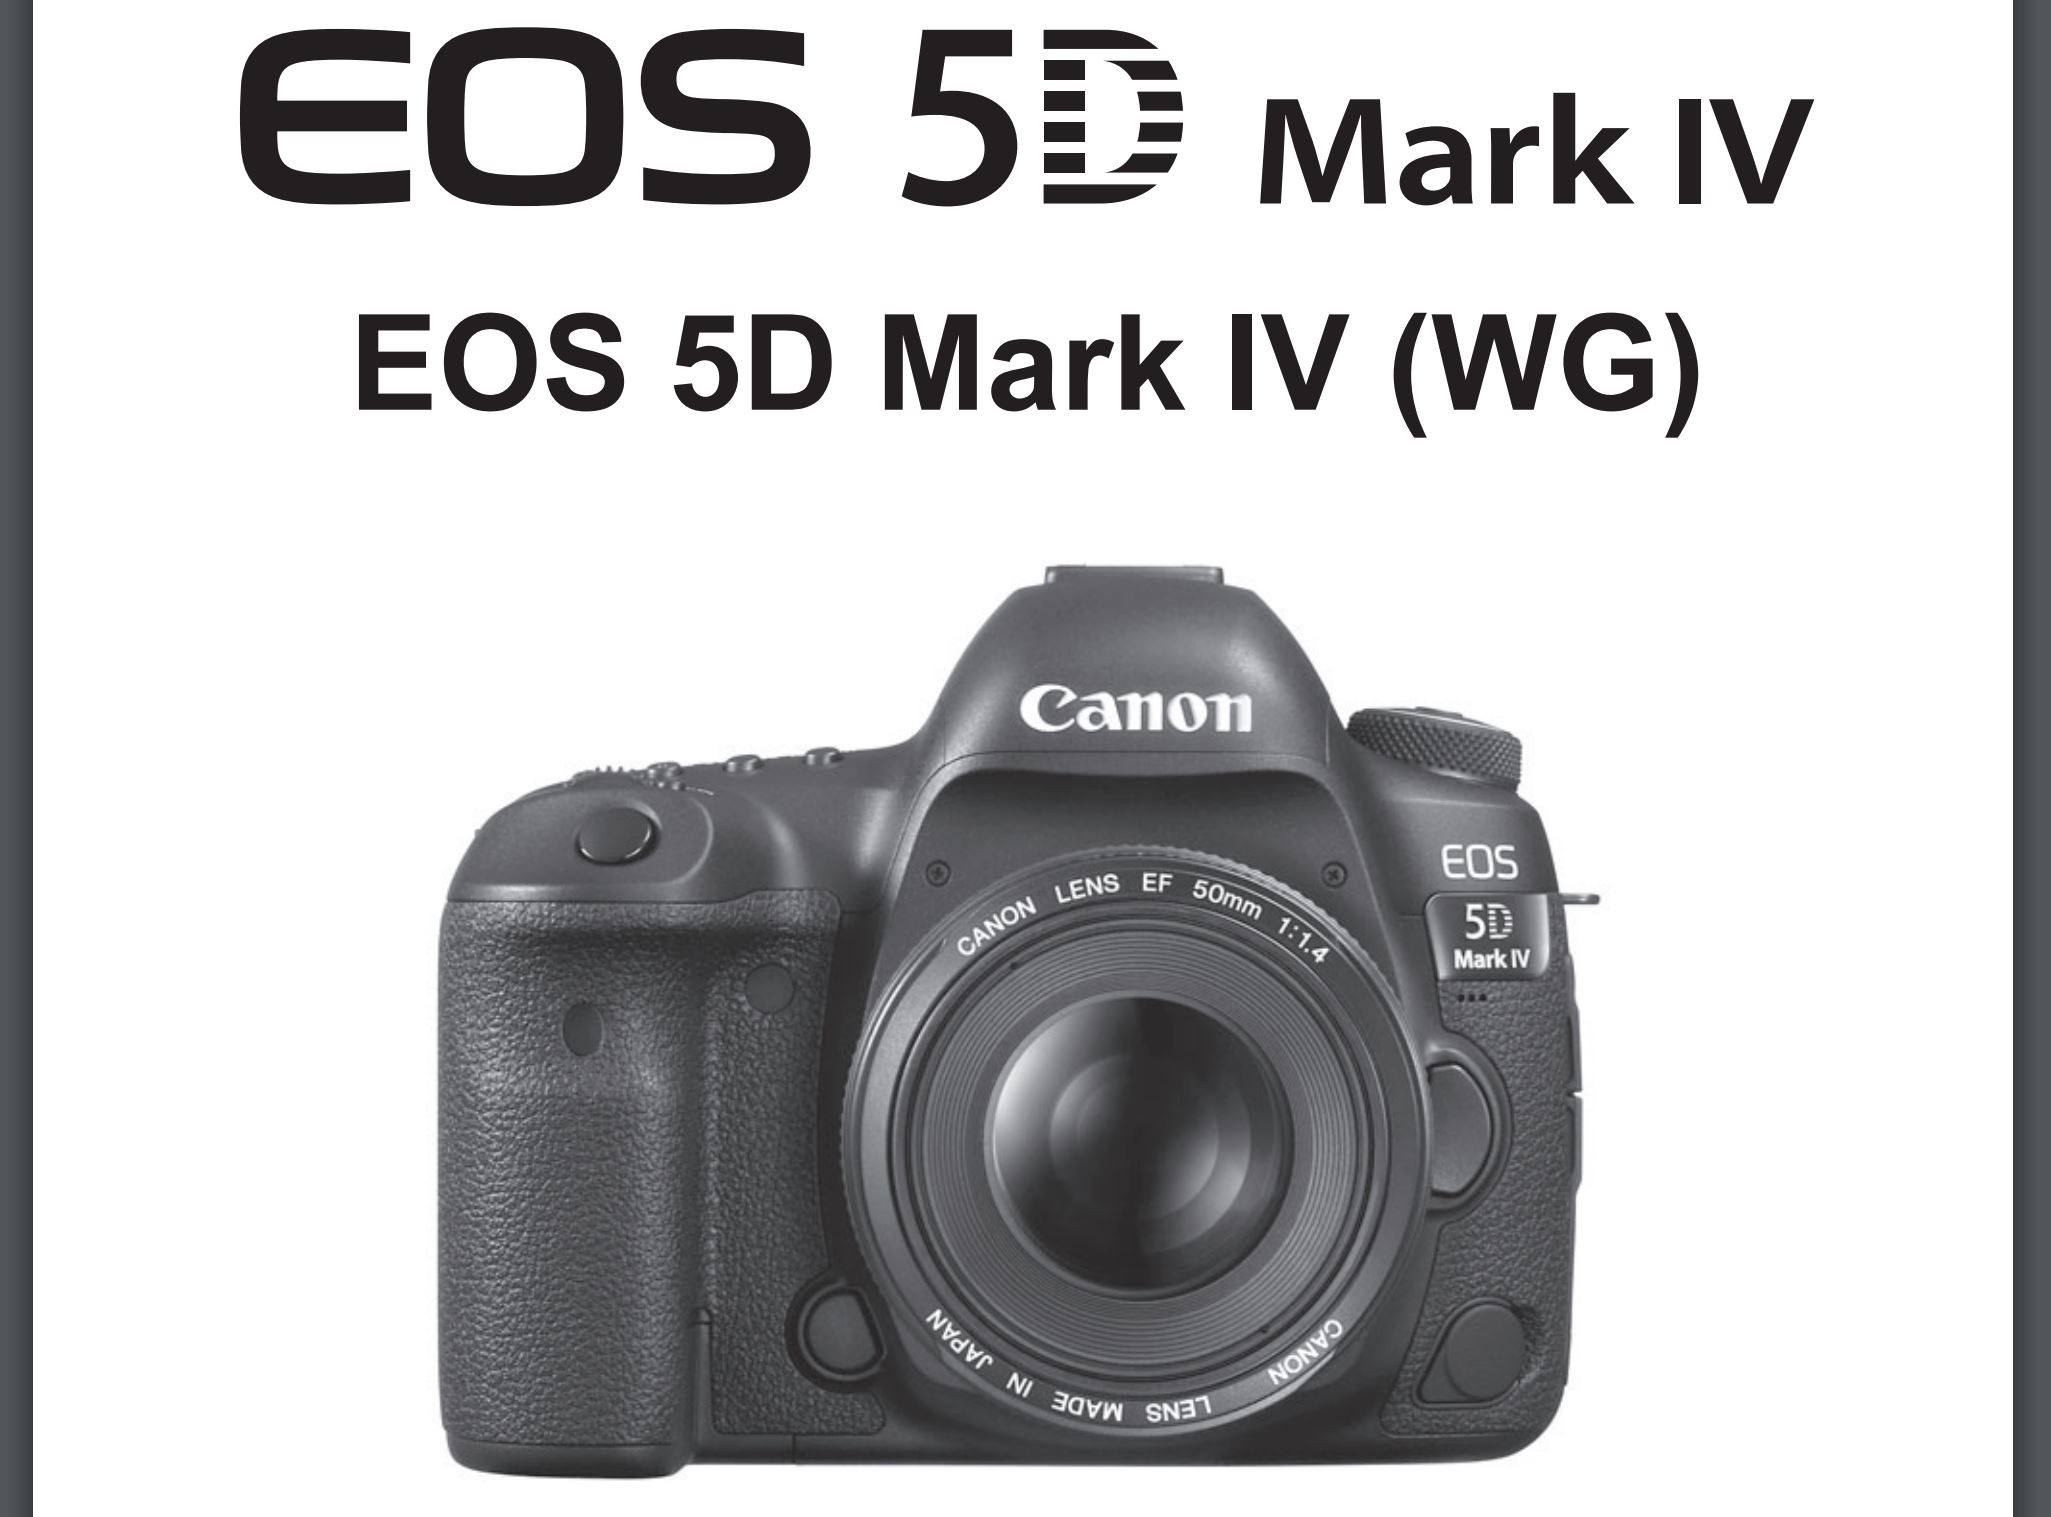 canon eos 5d mark iv instruction manual now available for download rh cameraegg org canon 5d mark 2 operating manual canon 5d mark ii user manual download